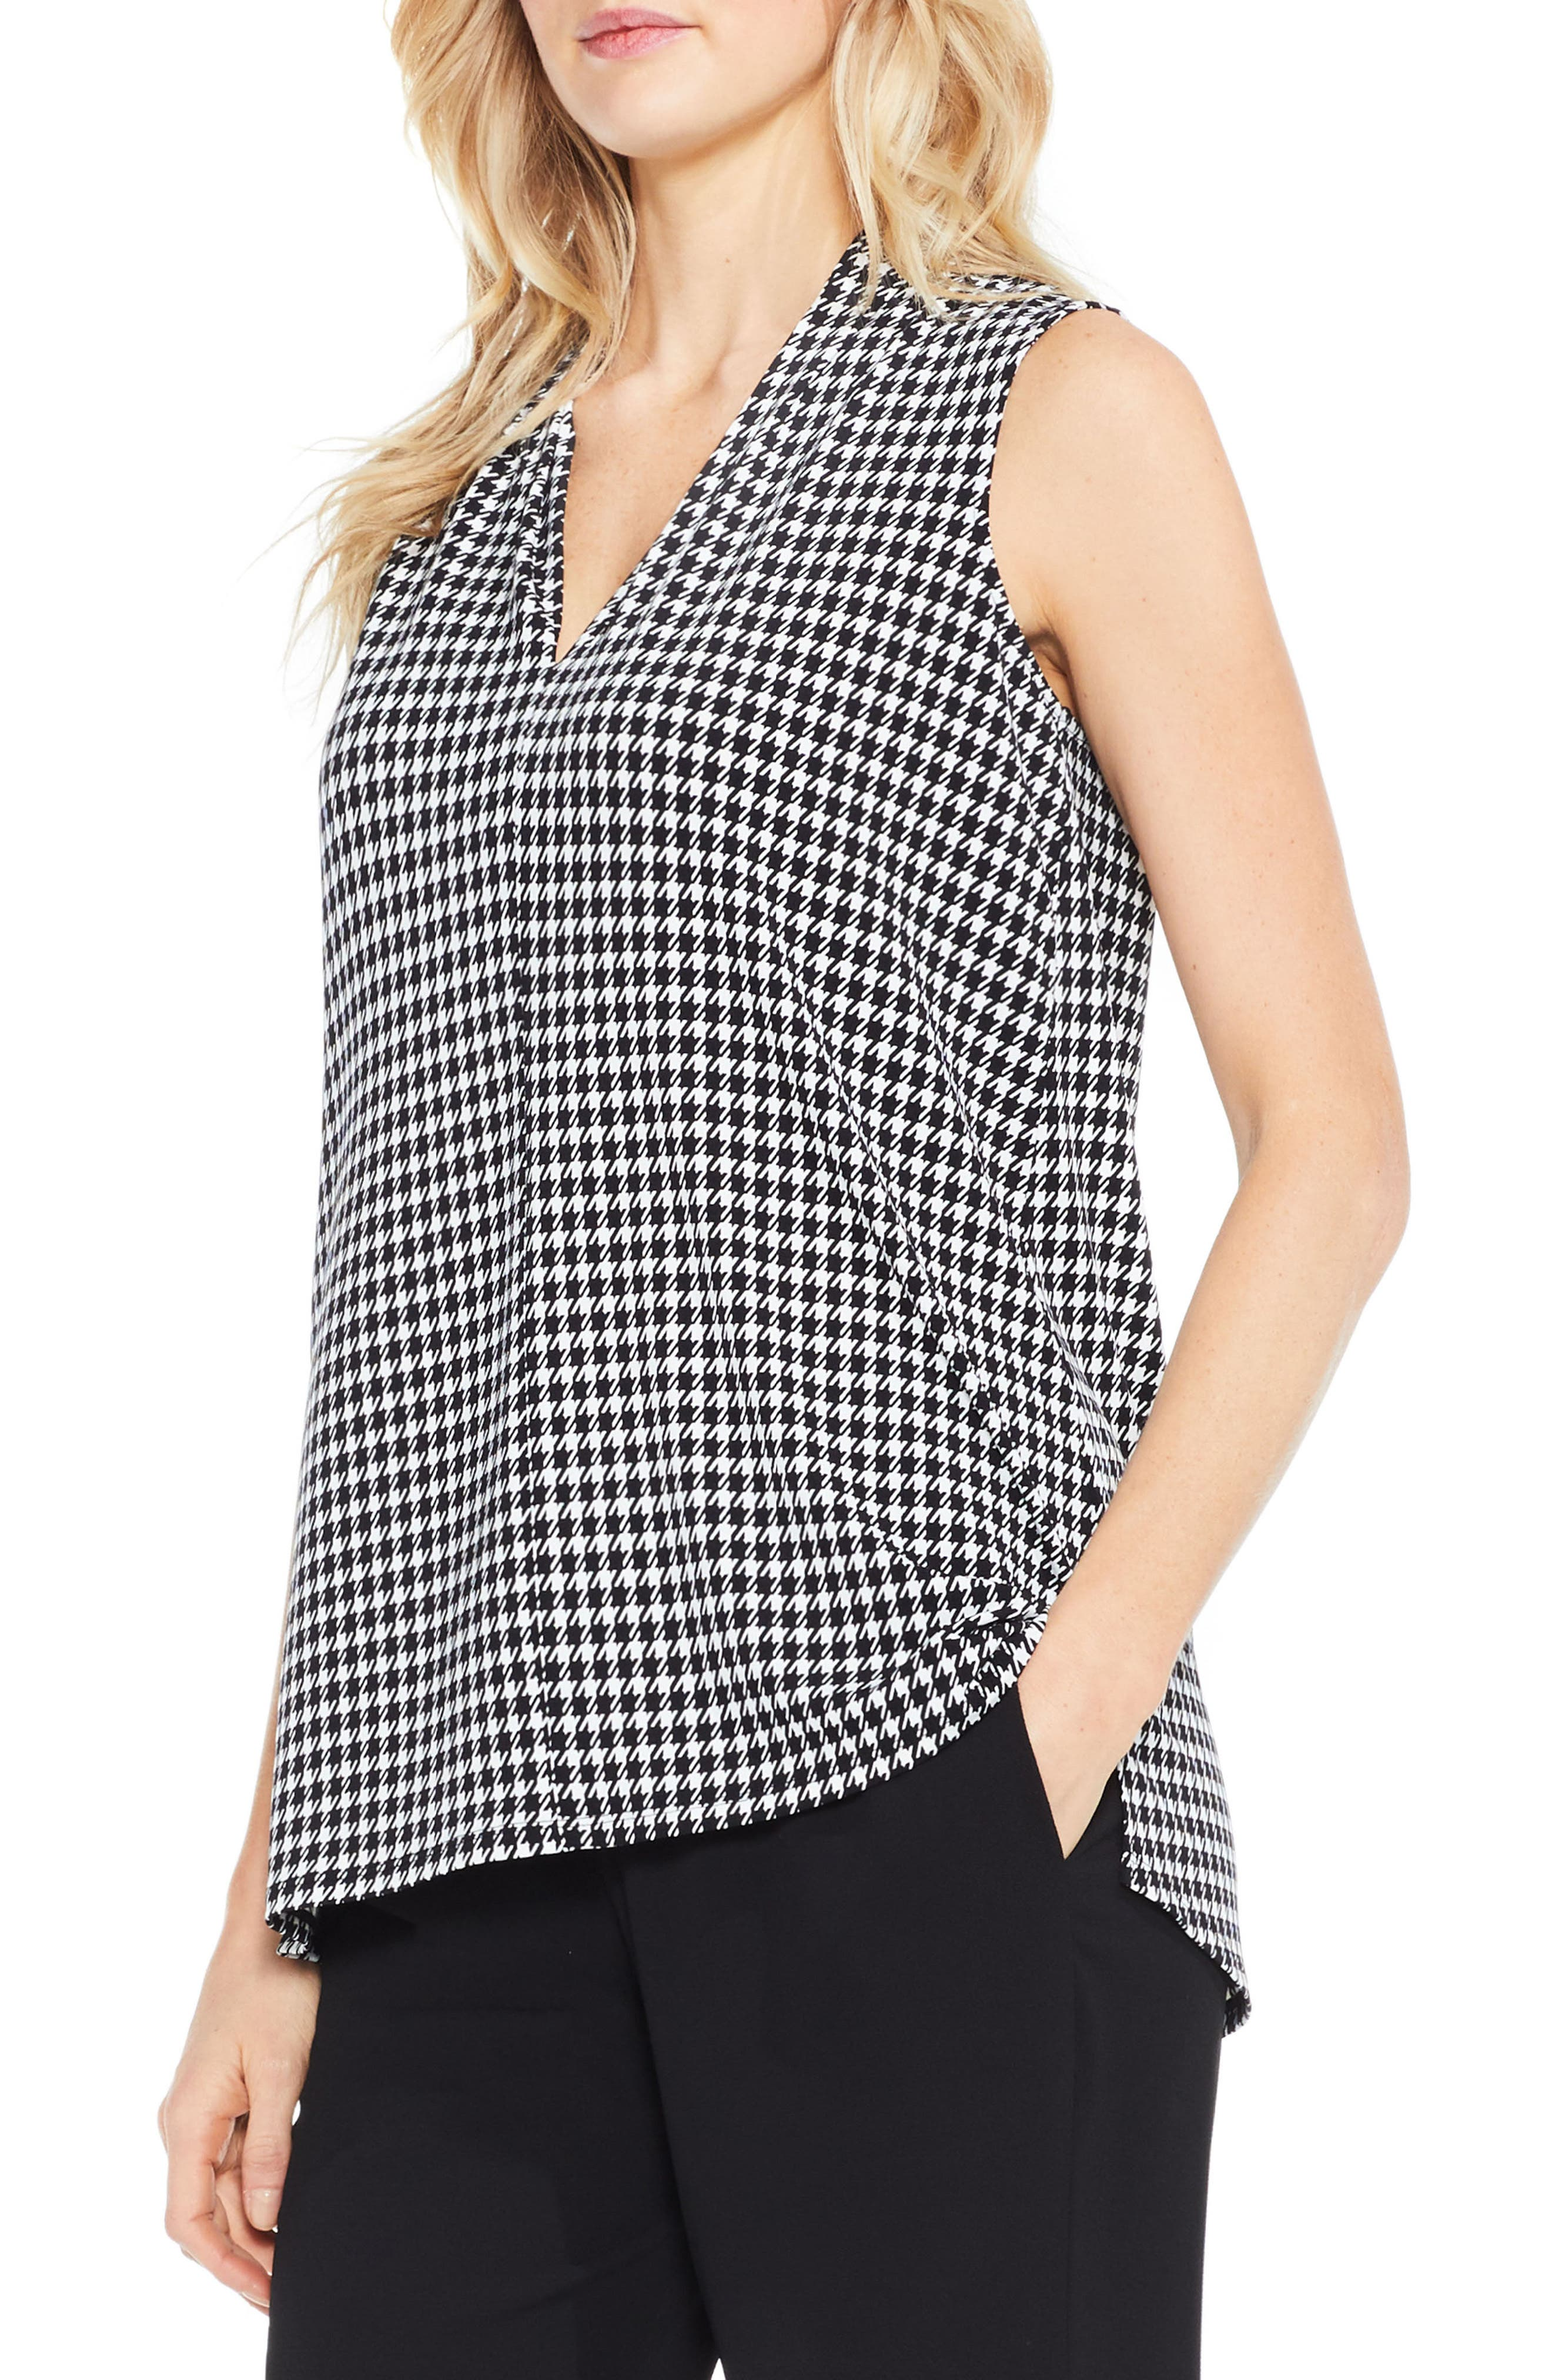 Vince Camuto Houndstooth Top